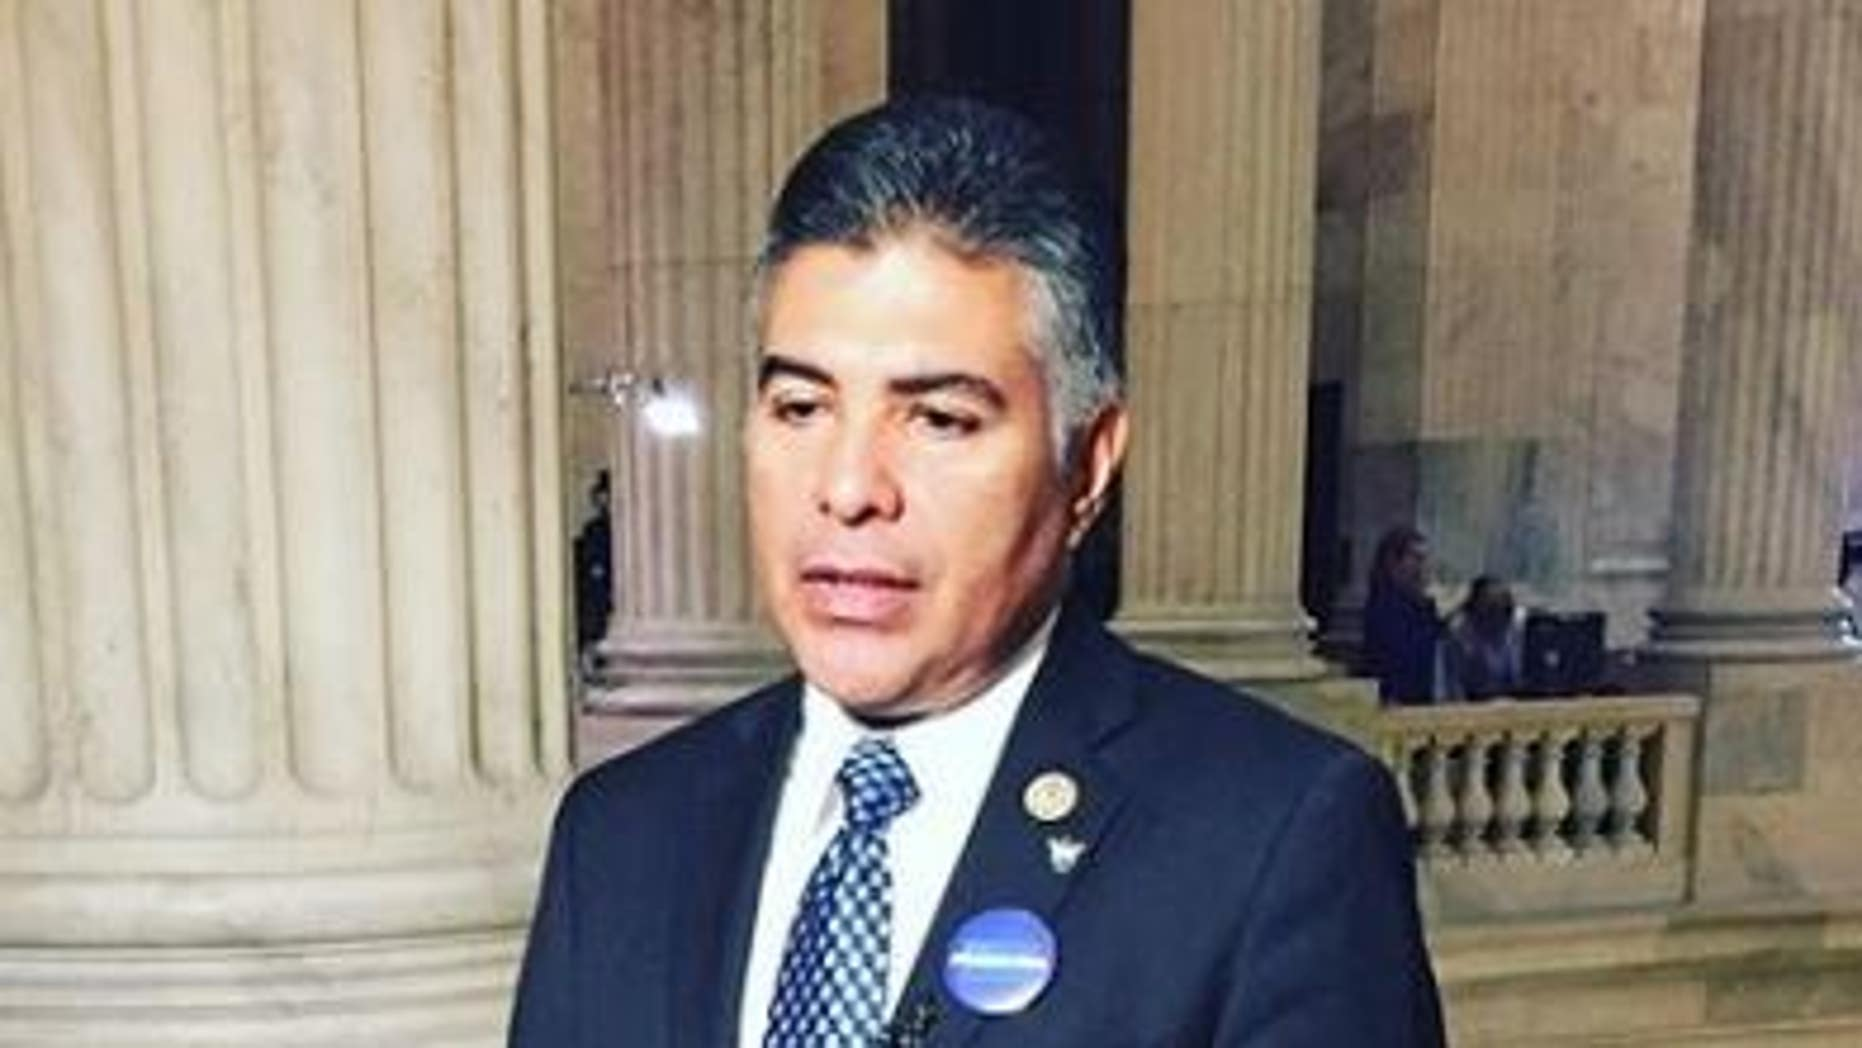 Rep. Tony Cárdenas, D-Calif. is denying allegations that he sexually assaulted a 16-year-old girl in 2007.